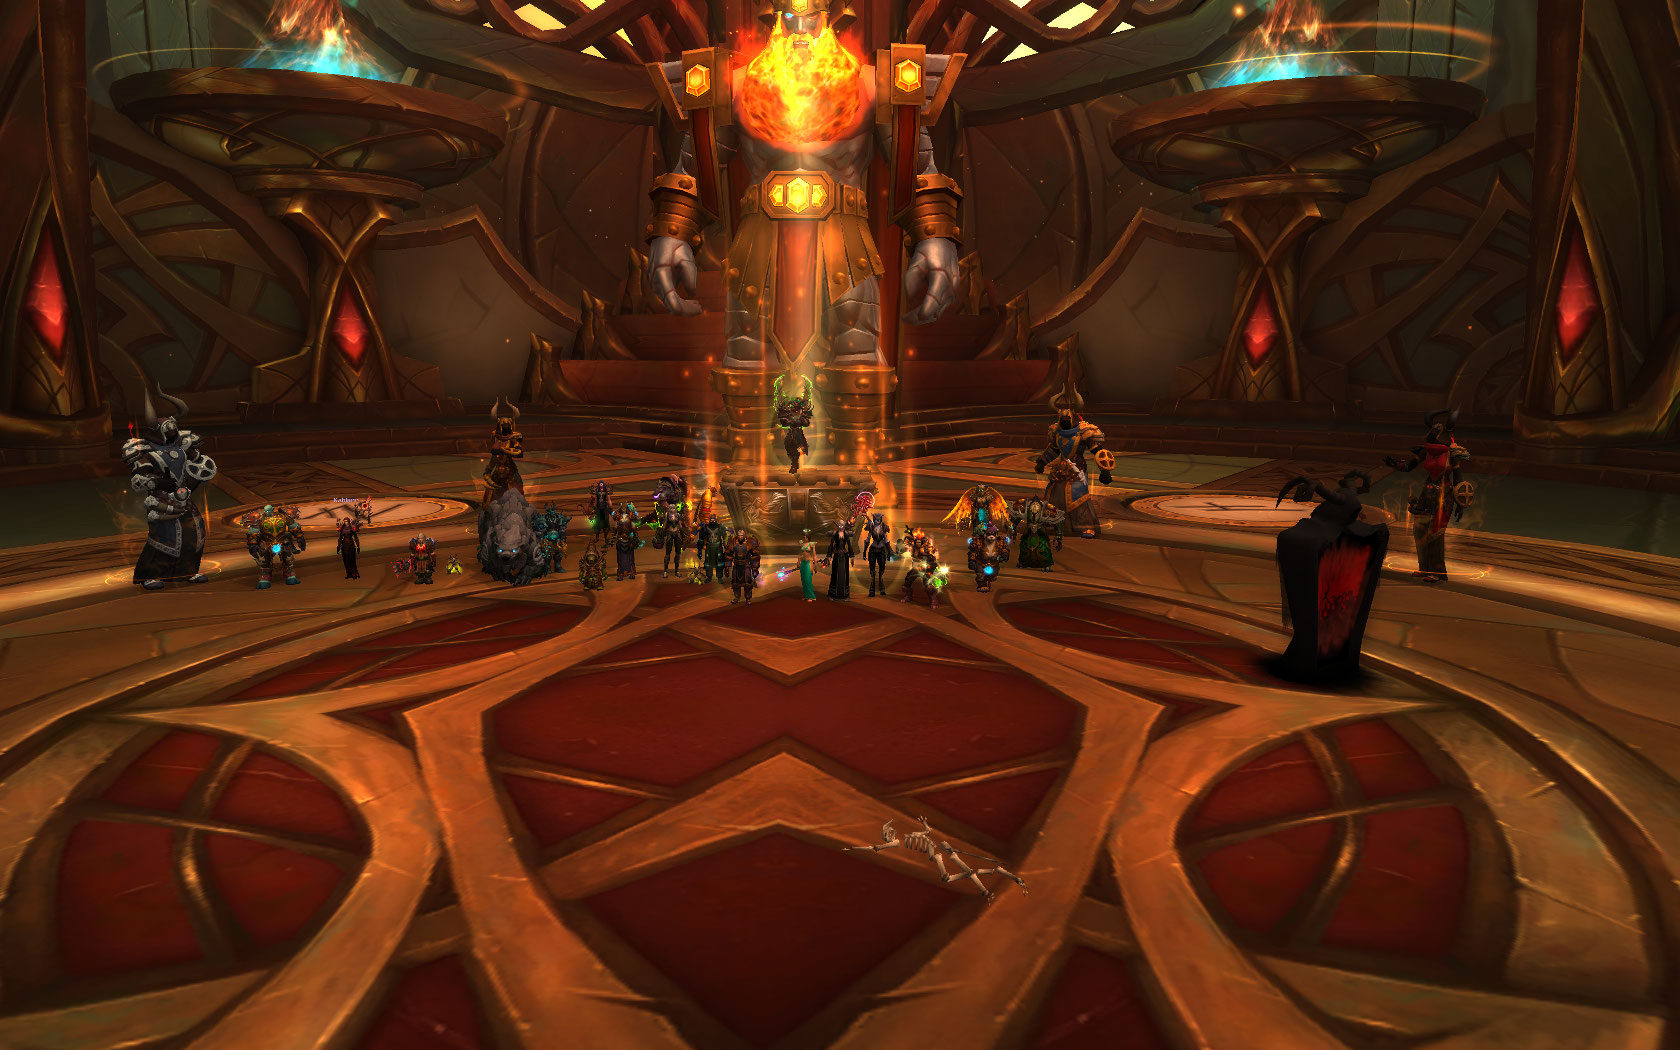 Team Ice had a party at Trial of Valor